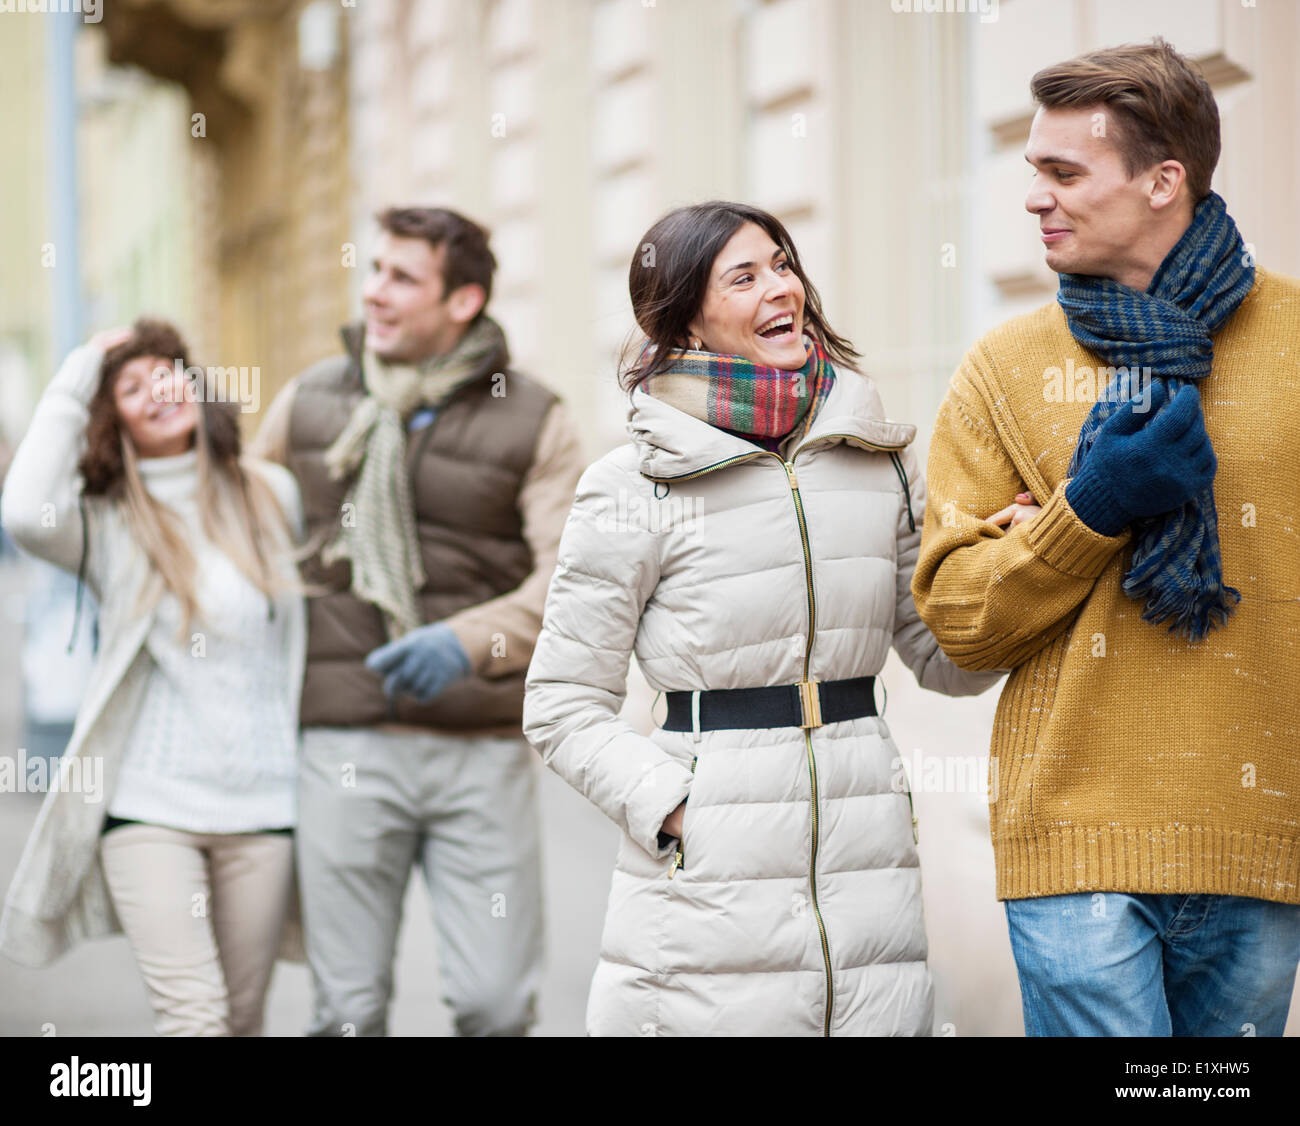 Happy couples in warm clothing enjoying vacation - Stock Image